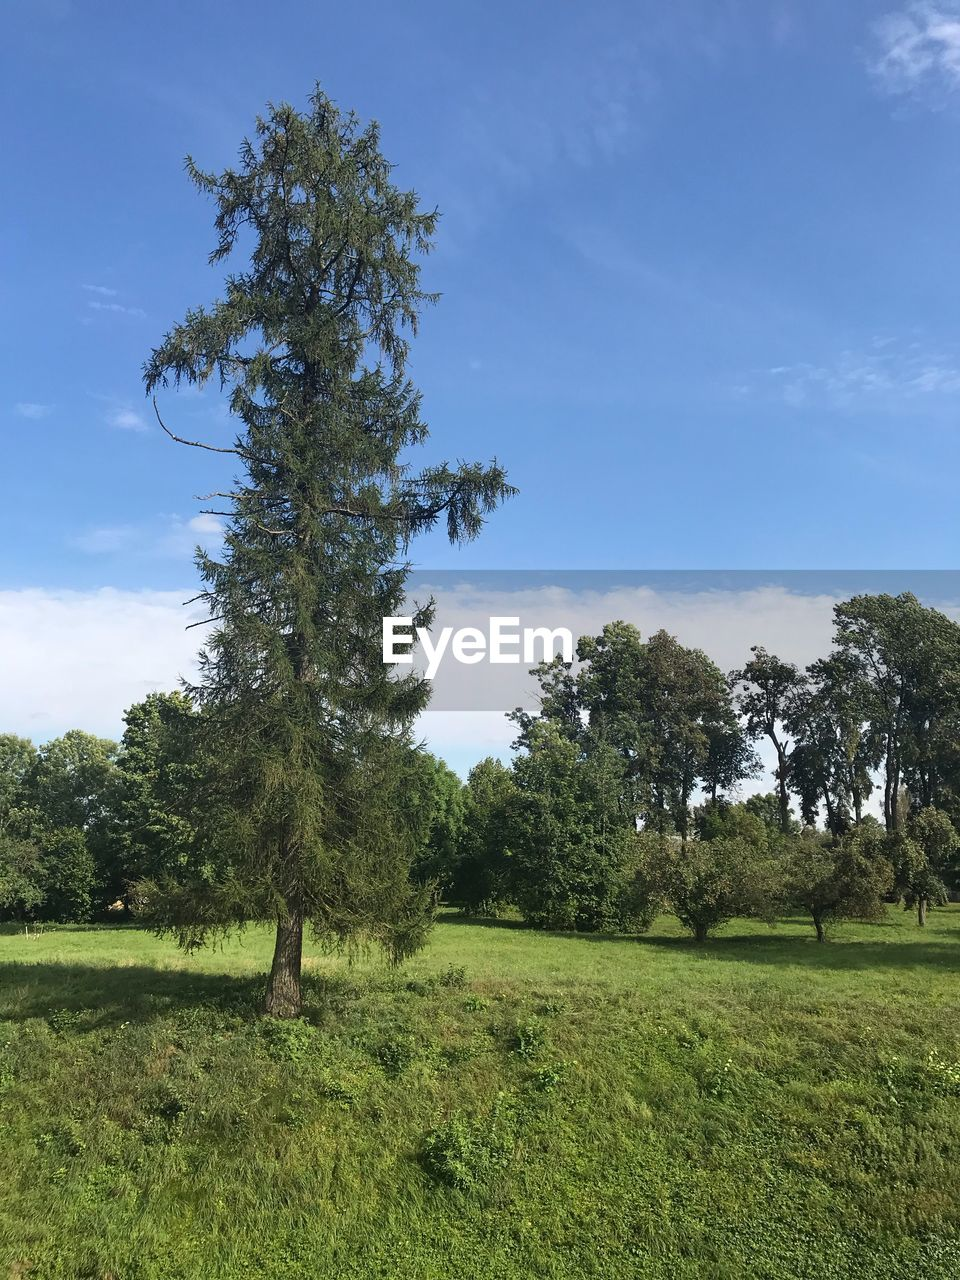 plant, tree, sky, grass, field, land, landscape, green color, environment, growth, tranquil scene, tranquility, nature, beauty in nature, day, scenics - nature, cloud - sky, no people, non-urban scene, outdoors